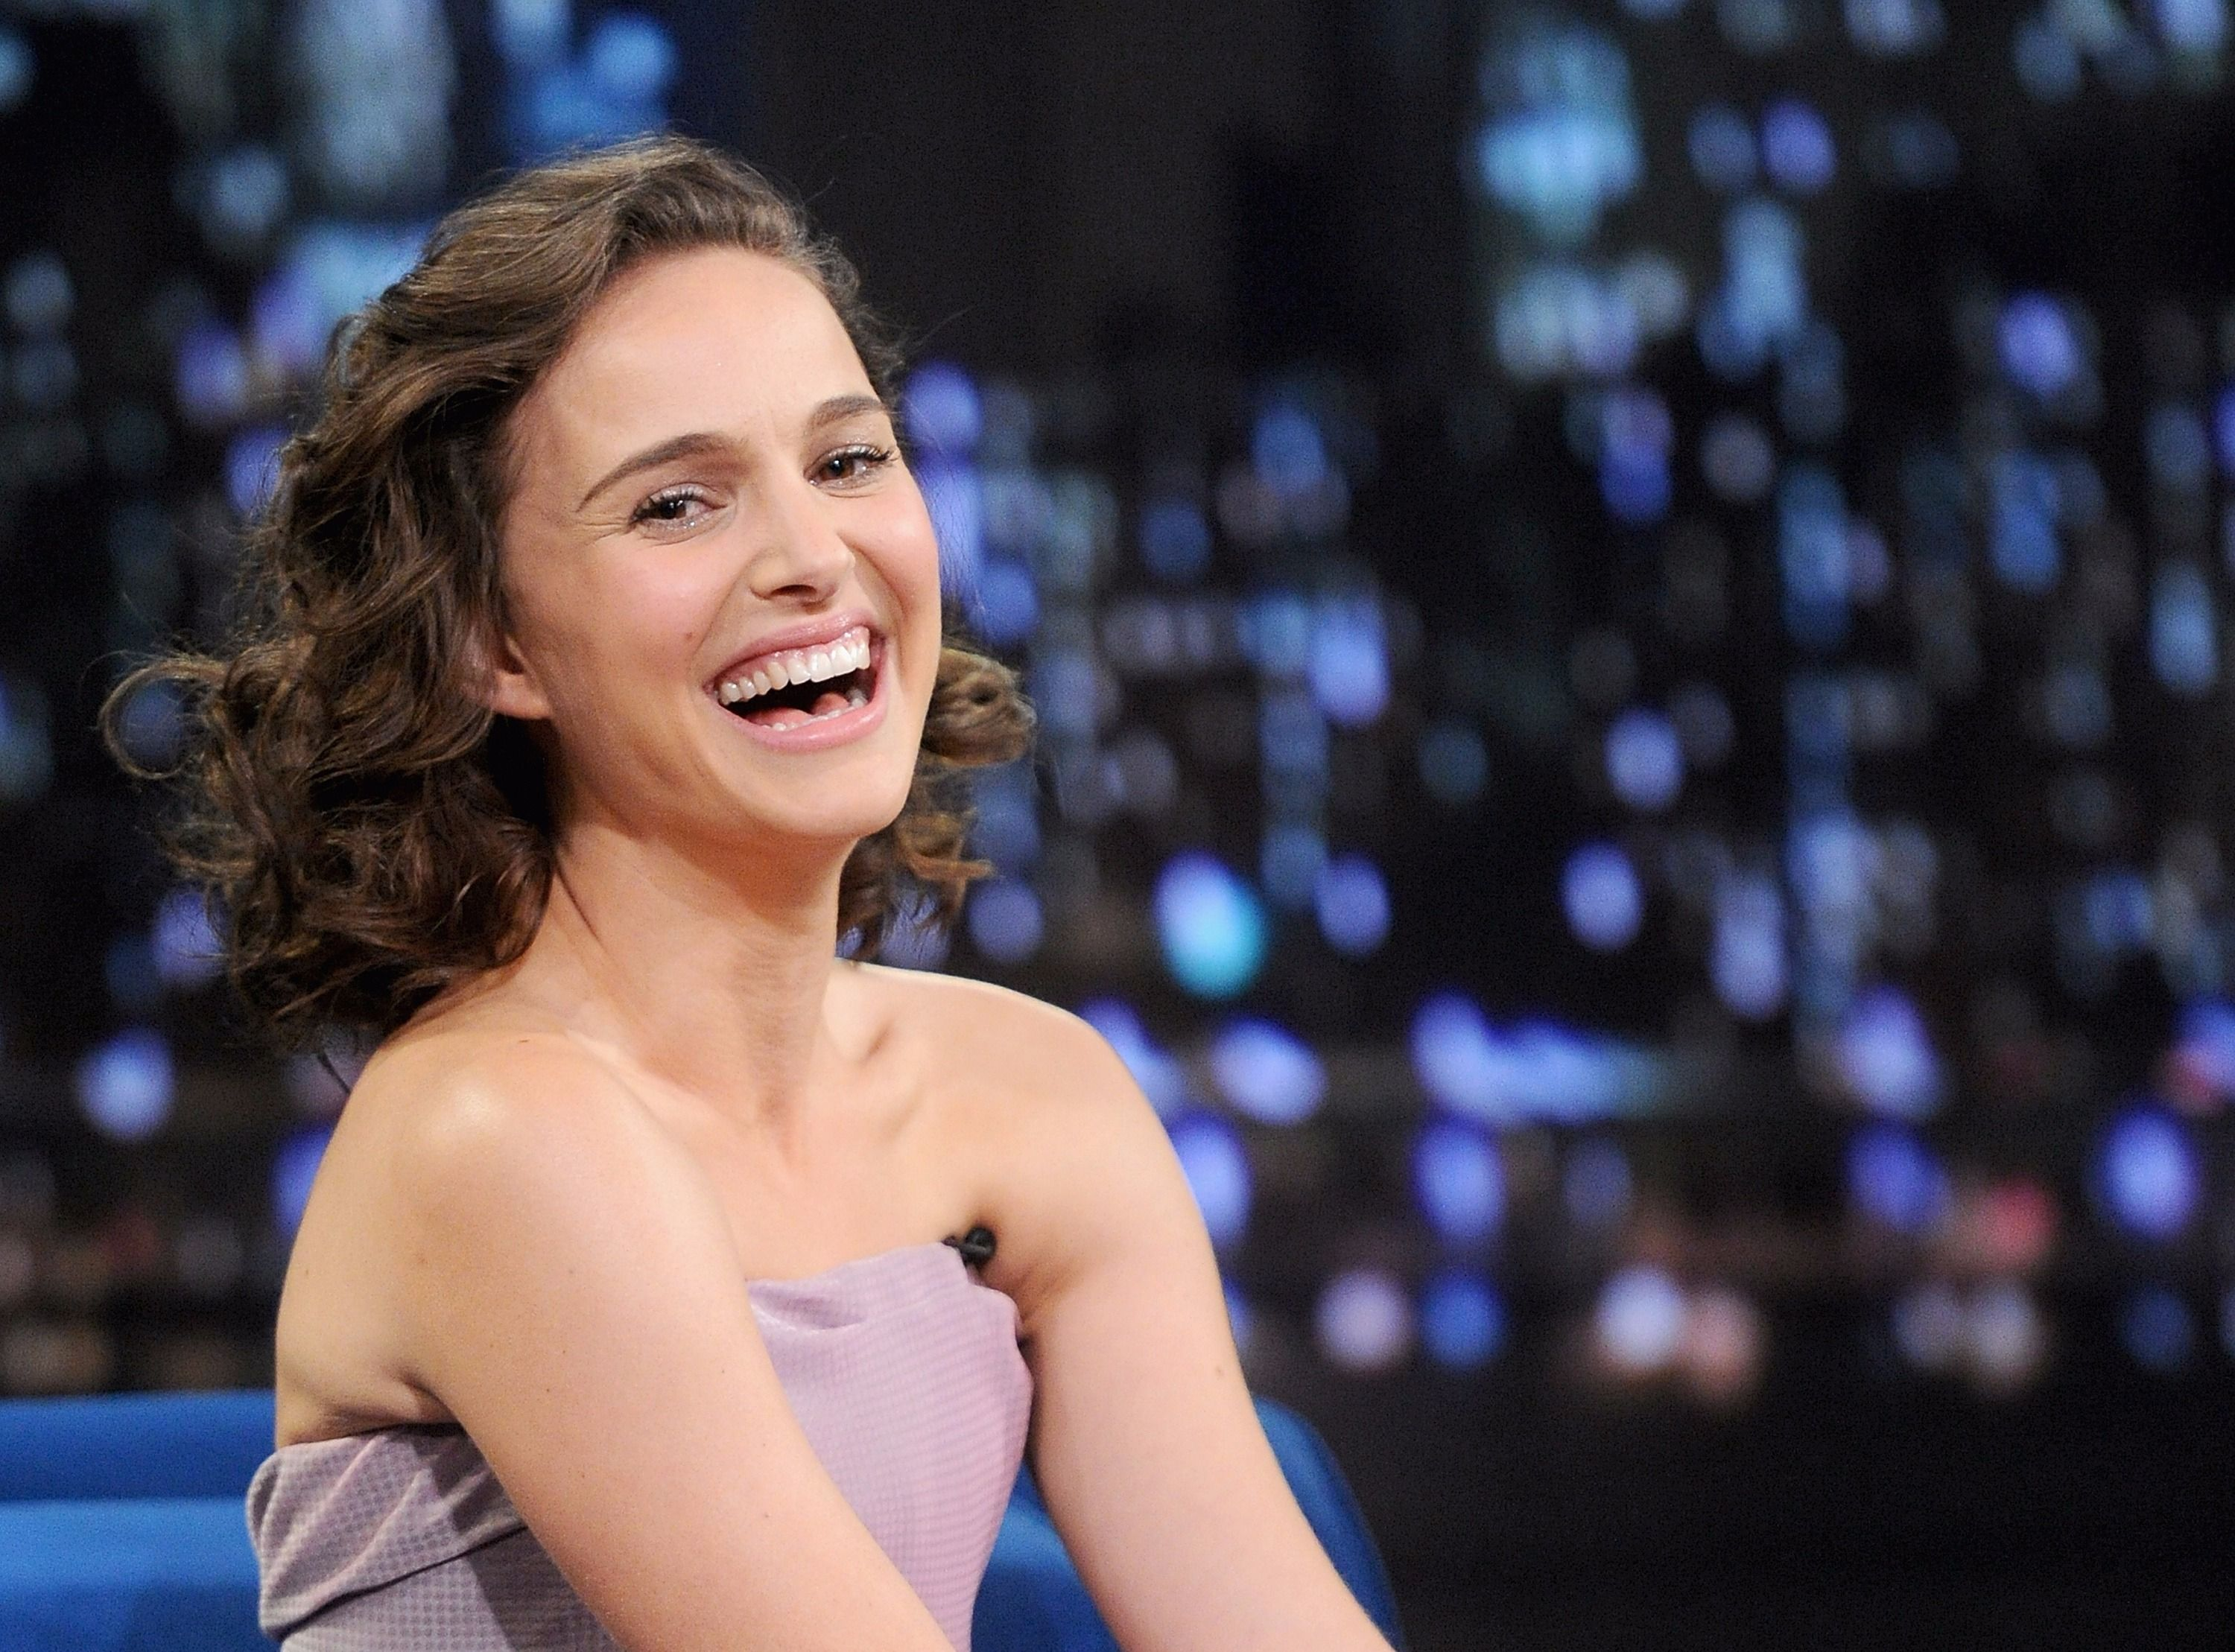 Natalie Portman Named Winner of 'Jewish Nobel' Prize